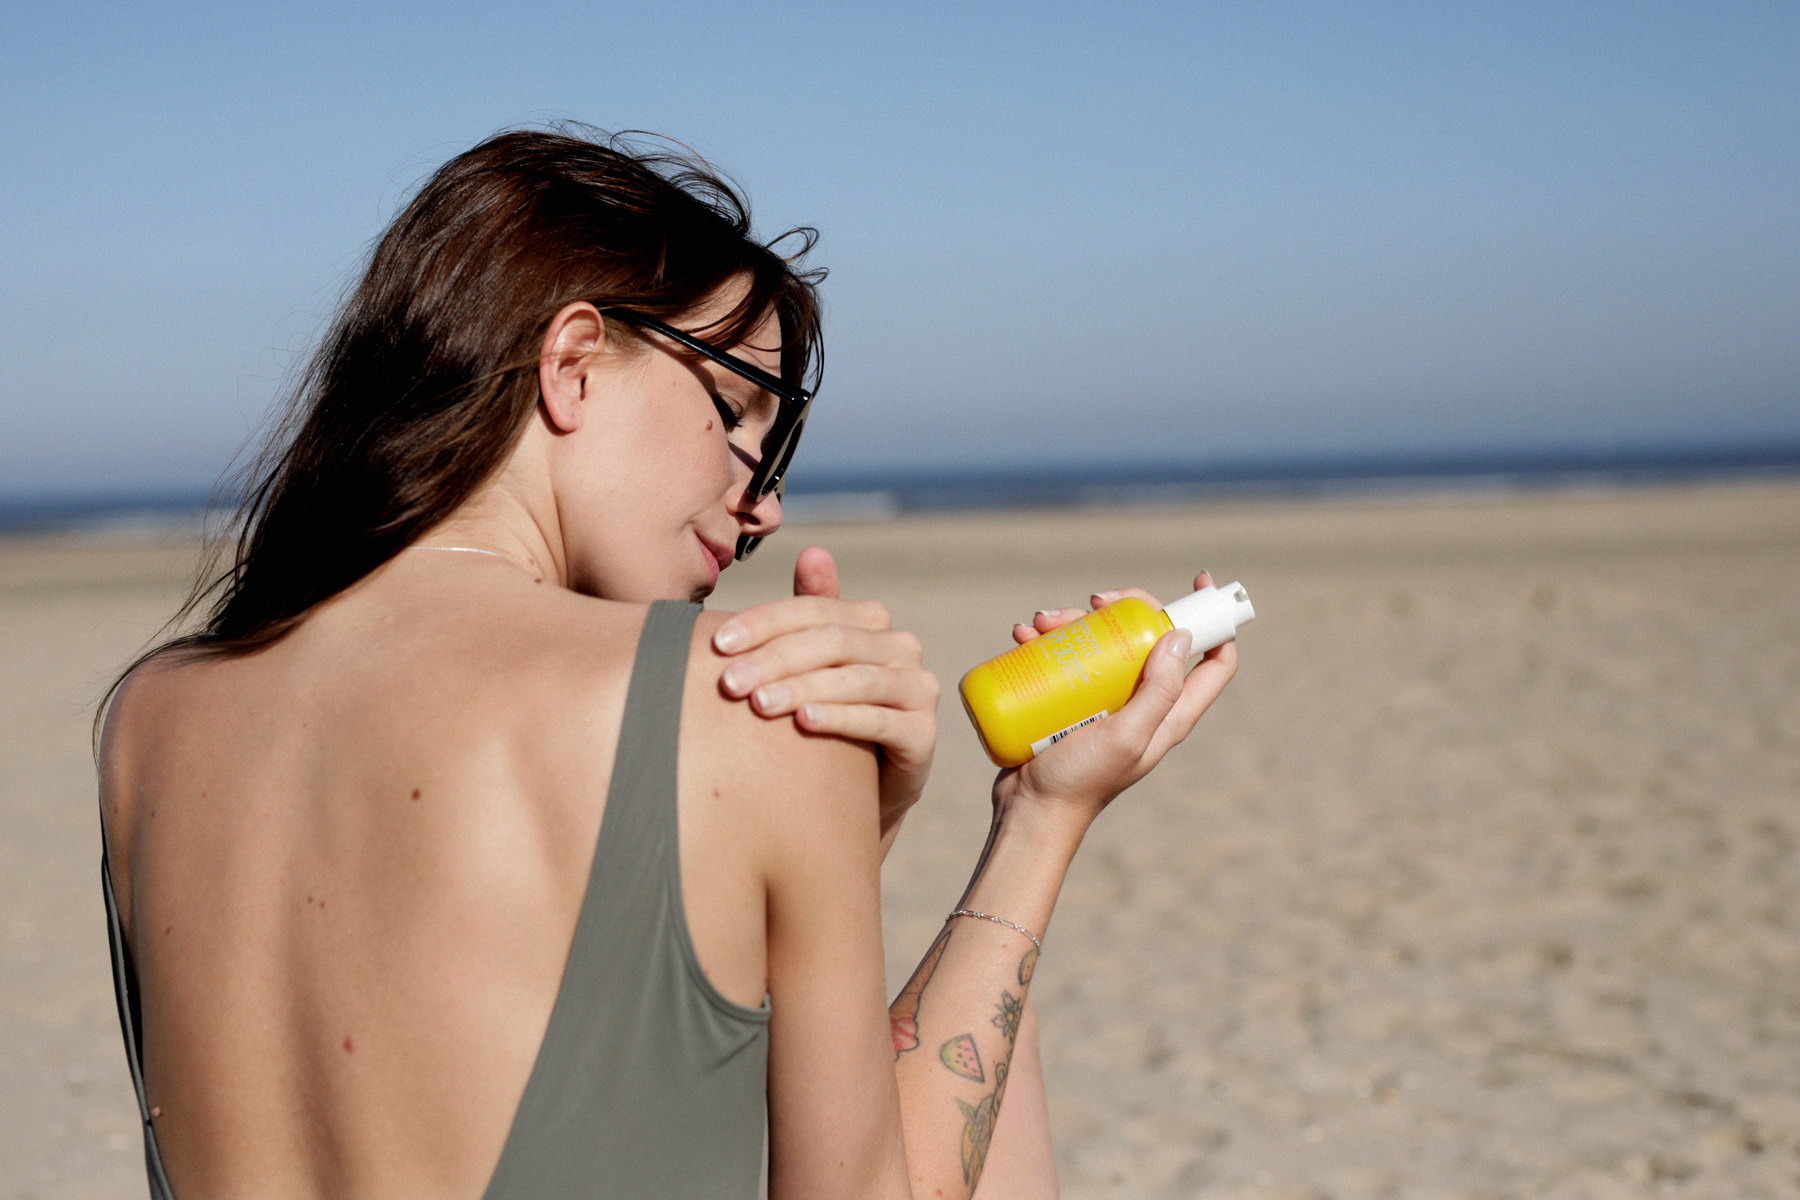 beauty at the beach lemon biotherm sun waterlovers suncare skincare sunblock beachlife beachvacation diptyque skincare eos crystal lip balm bikini swimwear beautyblogger beautybloggers catsanddogsblog ricarda schernus beautyblogger düsseldorf catsdogs 3